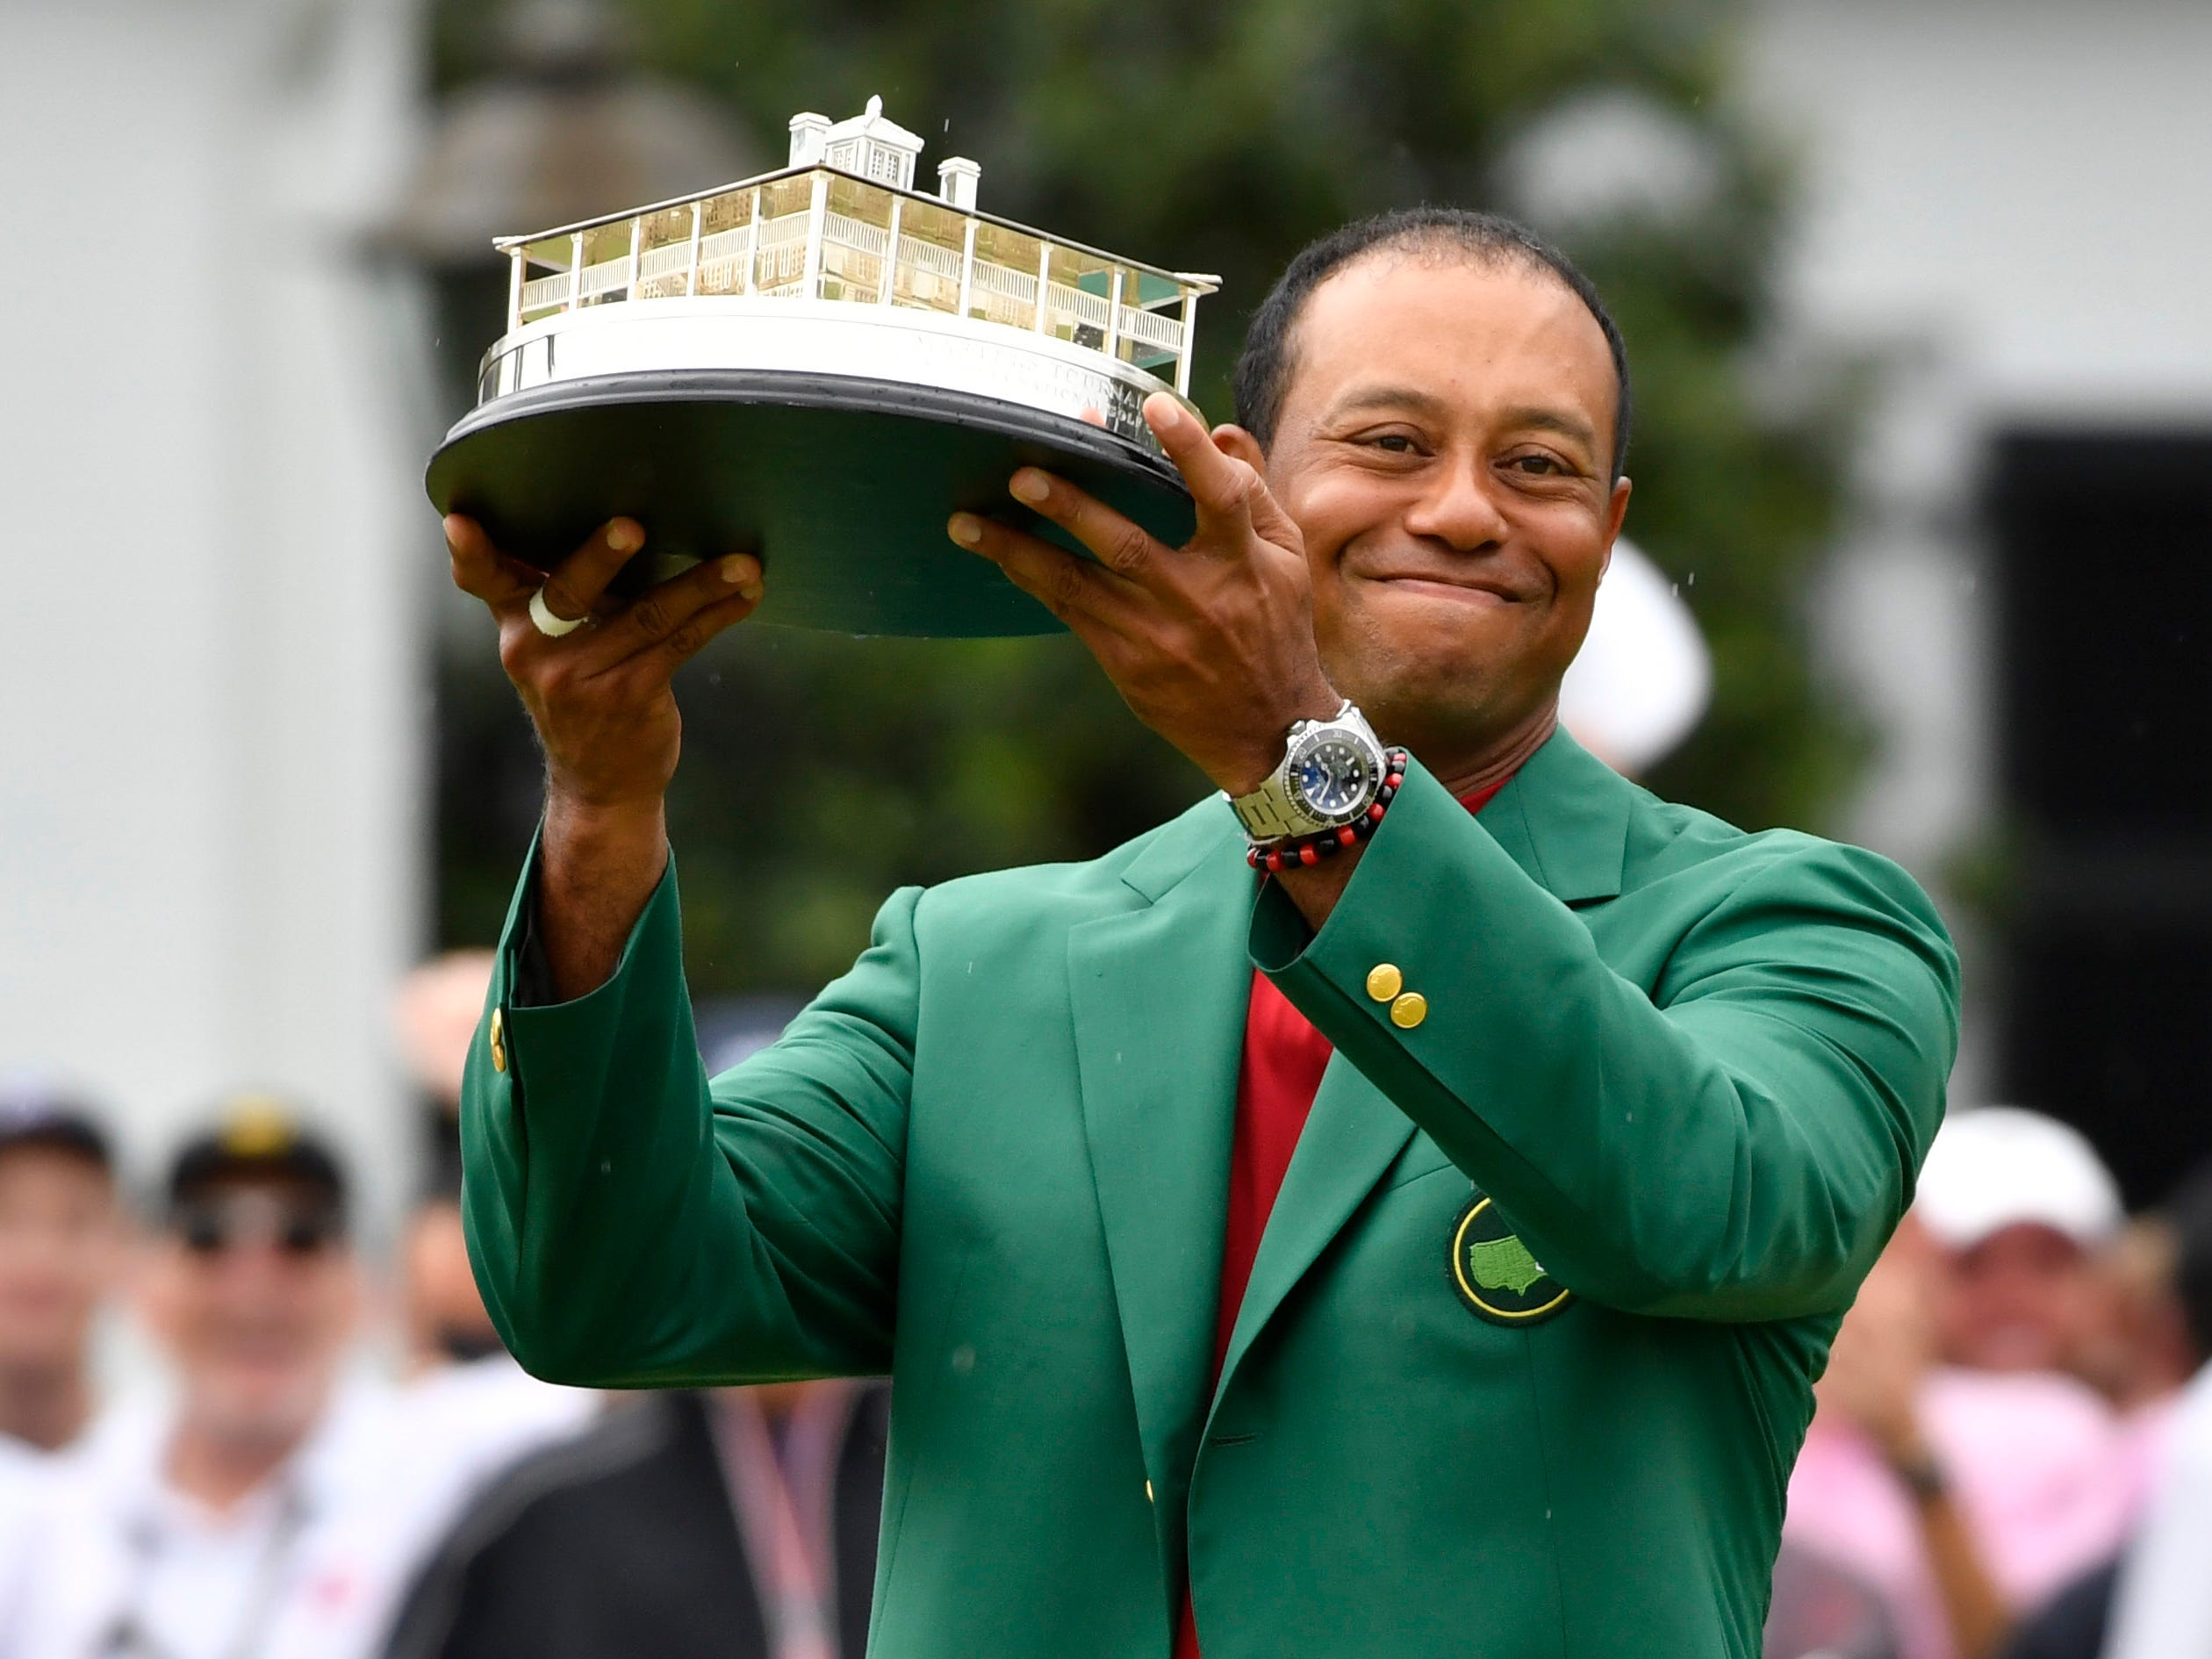 April 14: Tiger Woods celebrates with the green jacket and trophy after winning the Masters at Augusta National Golf Club.